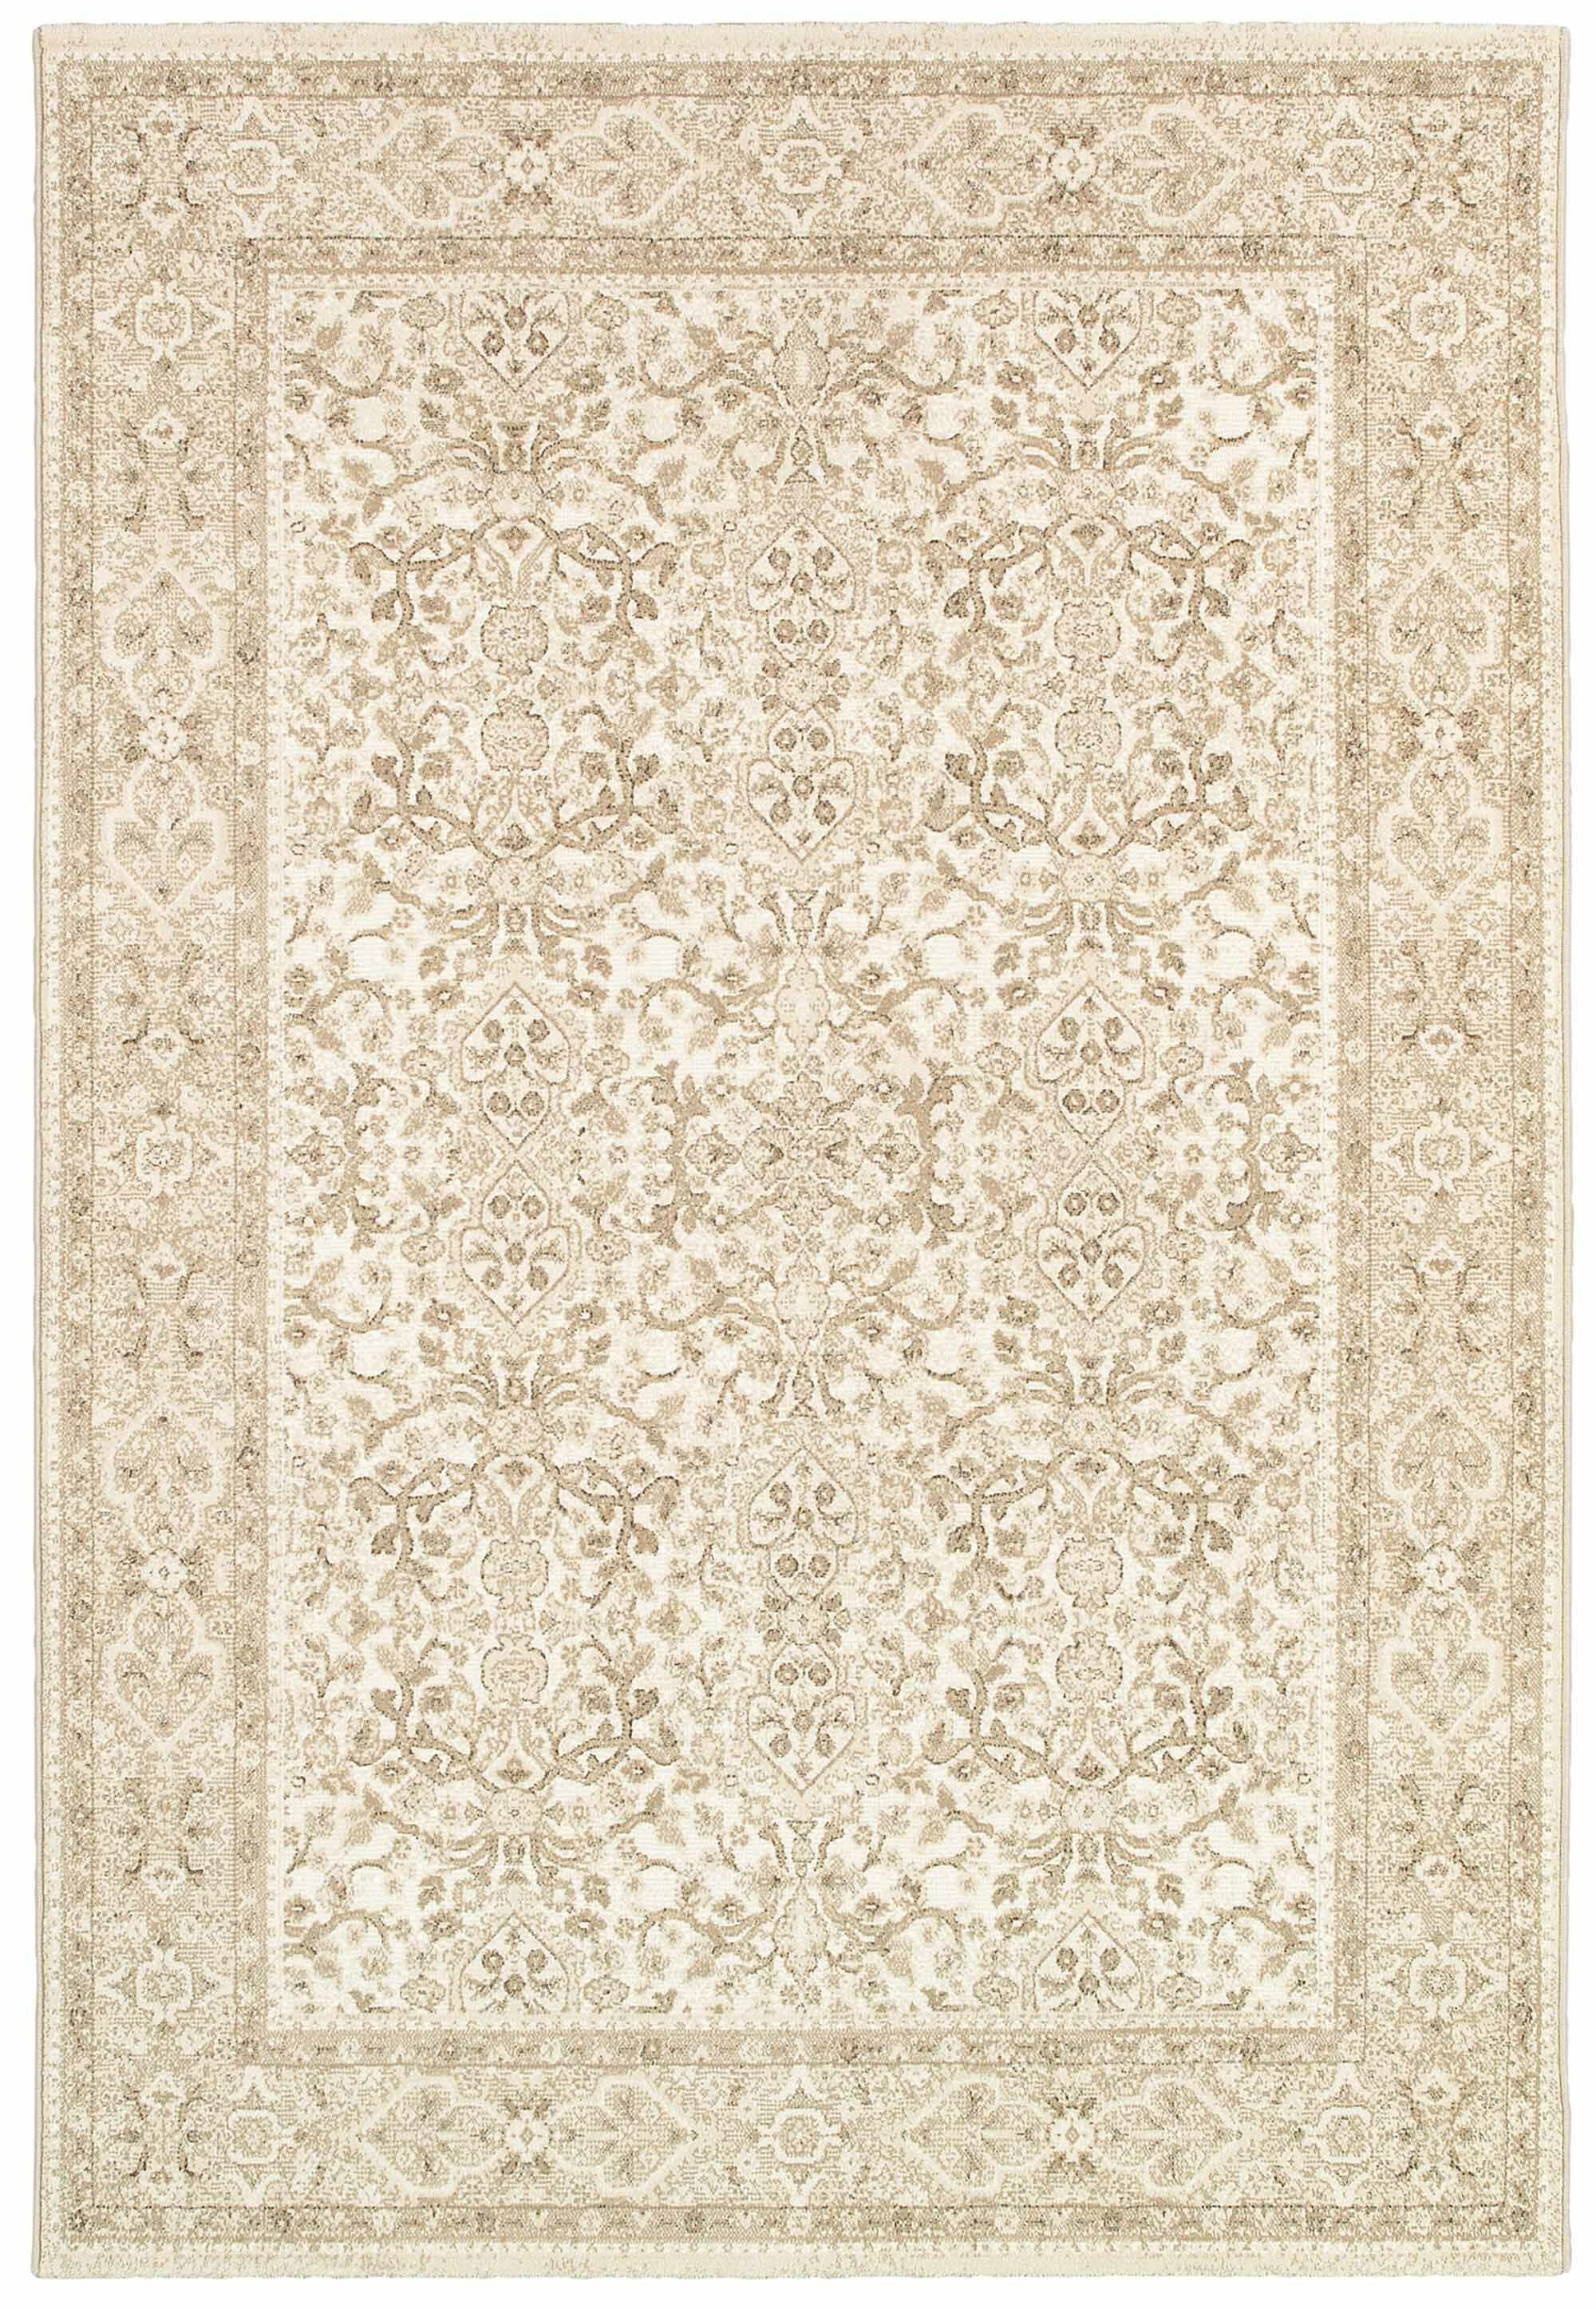 Duckett Champagne Area Rug Rug Size: Rectangle 9'2